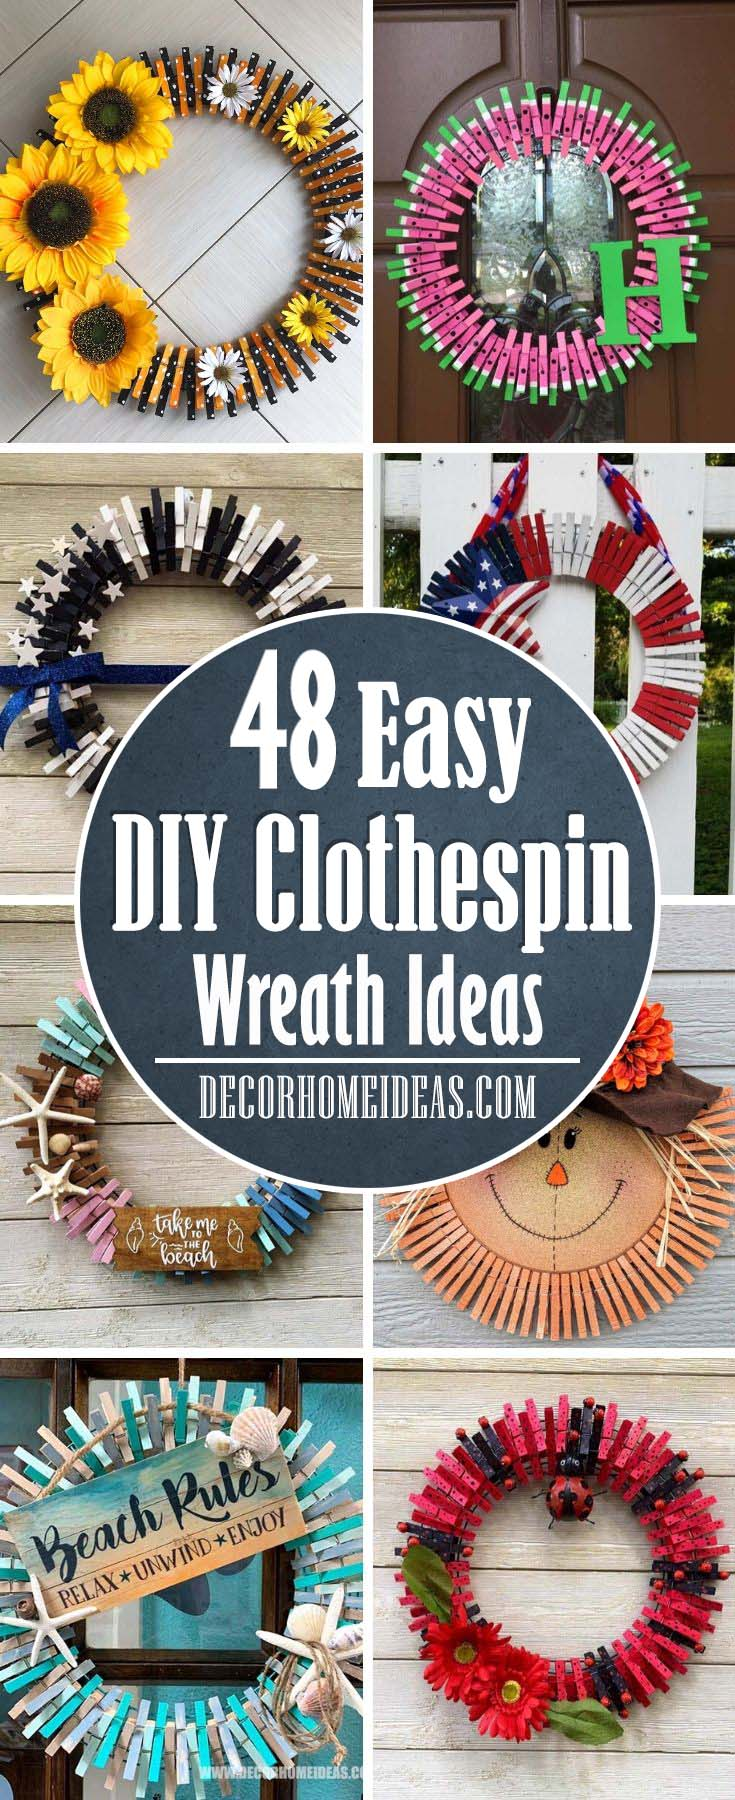 Best DIY Clothespin Wreaths that are really easy to do. Sunflower, 4th of July, watermelon, beach themed and fall ready are just some of the beautiful designs in this collection. #diy #clothespin #wreath #crafts #decorhomeideas